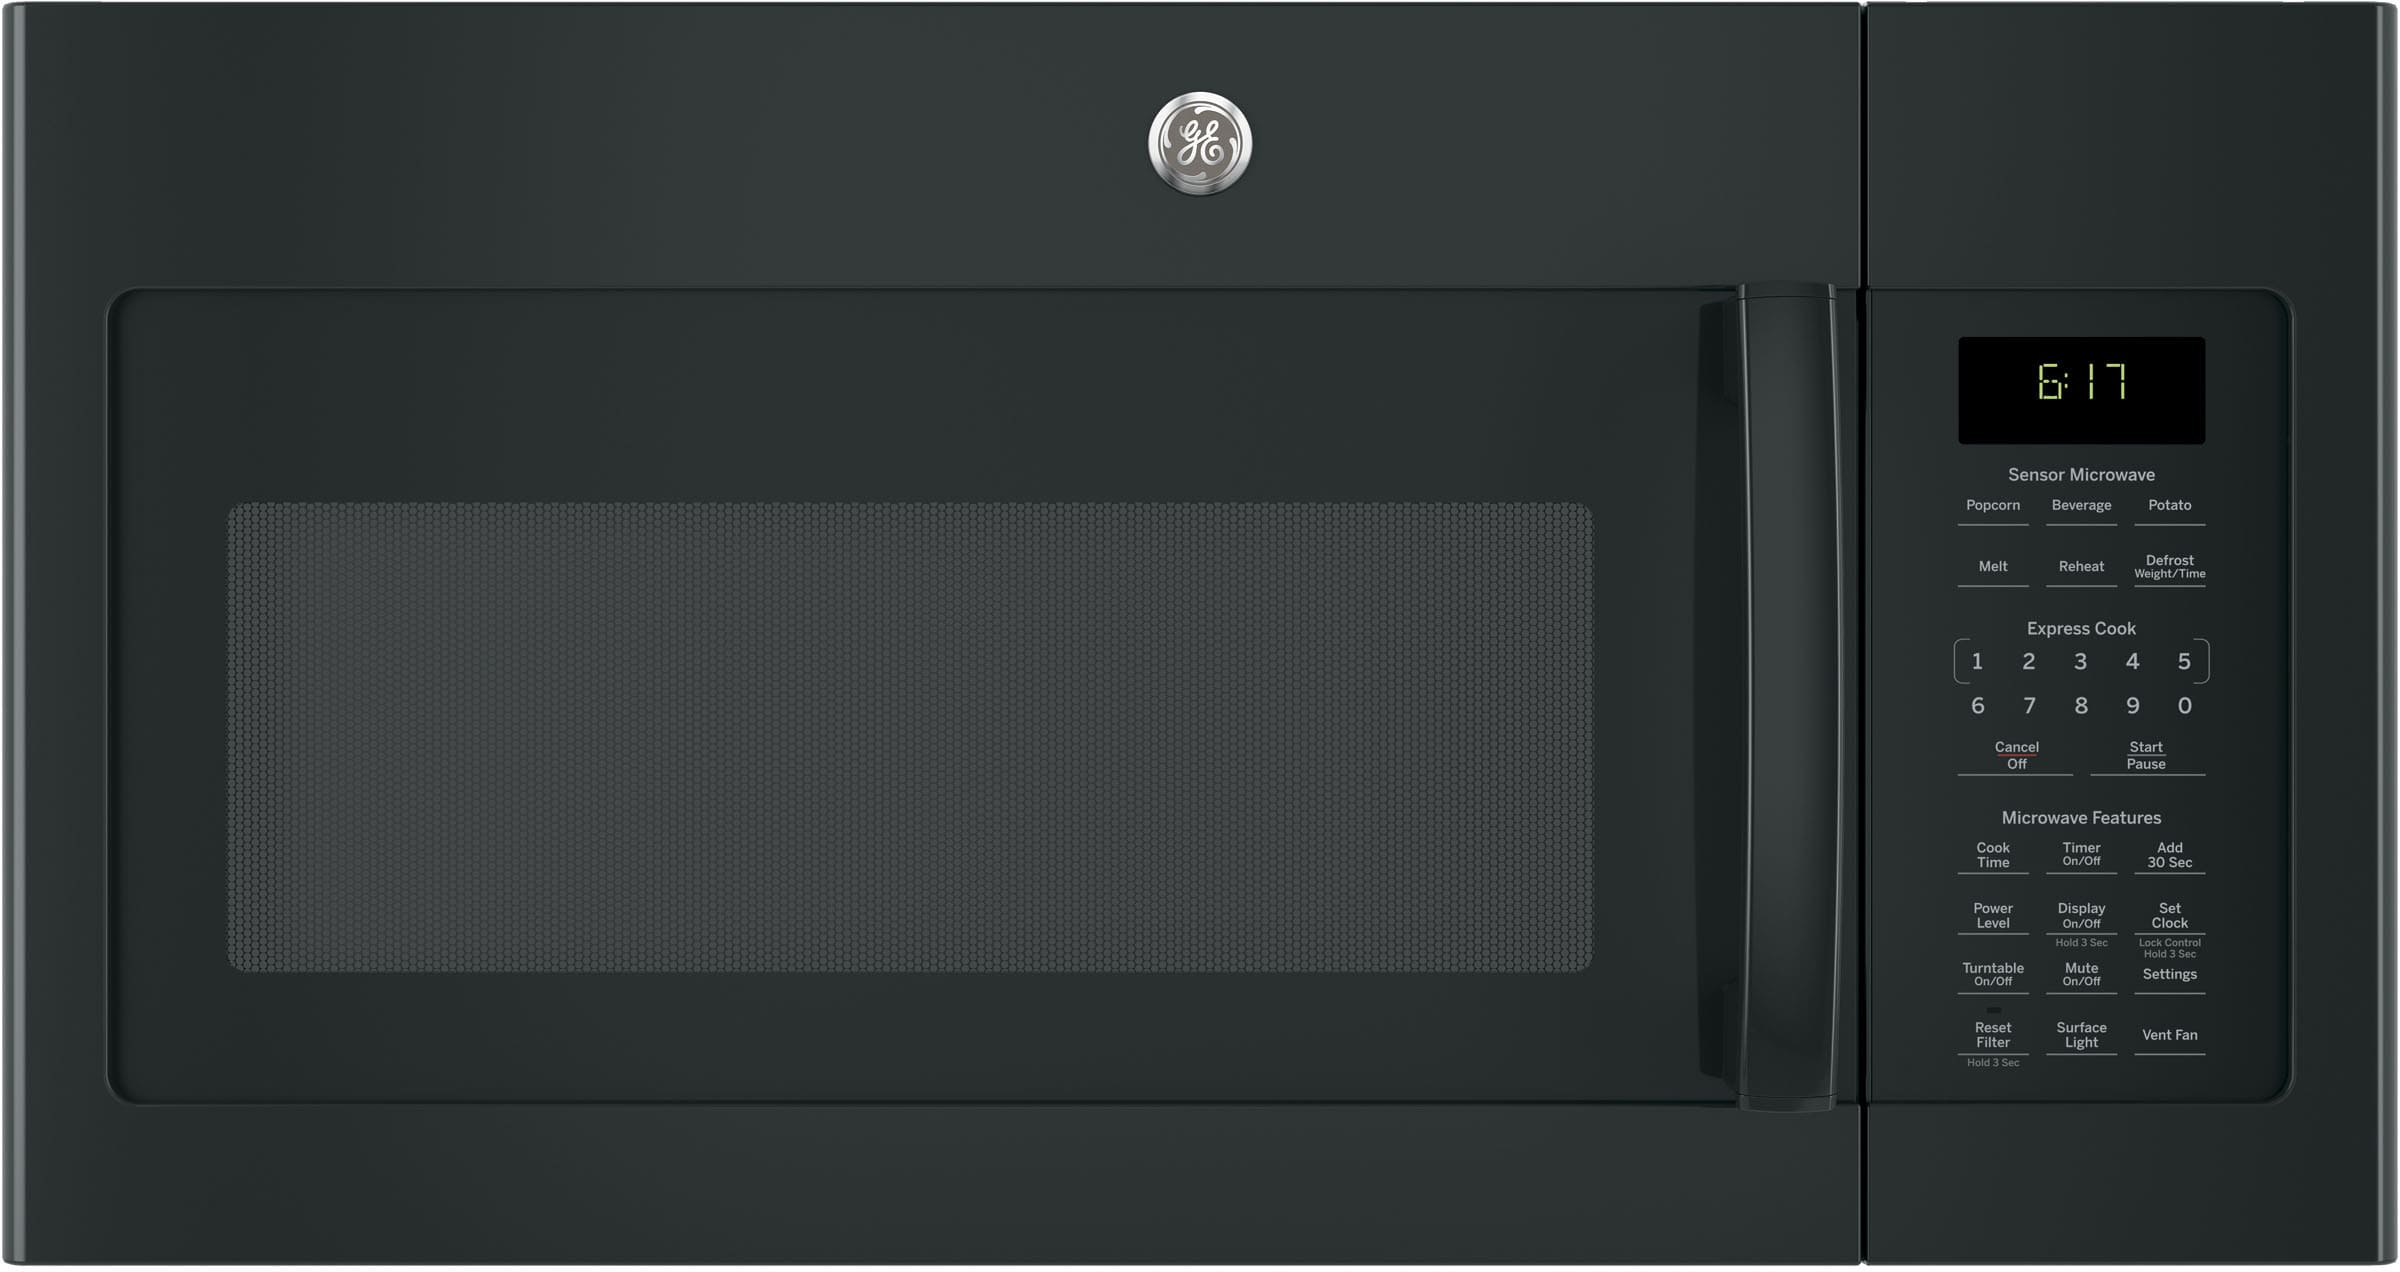 Ge Jvm6175dkbb 1 7 Cu Ft Over The Range Microwave With 1 000 Watts 300 Cfm Ventilation 10 Power Levels Sensor Cooking Melt Feature Add 30 Seconds Button Weight And Time Defrost Clock And Timer And